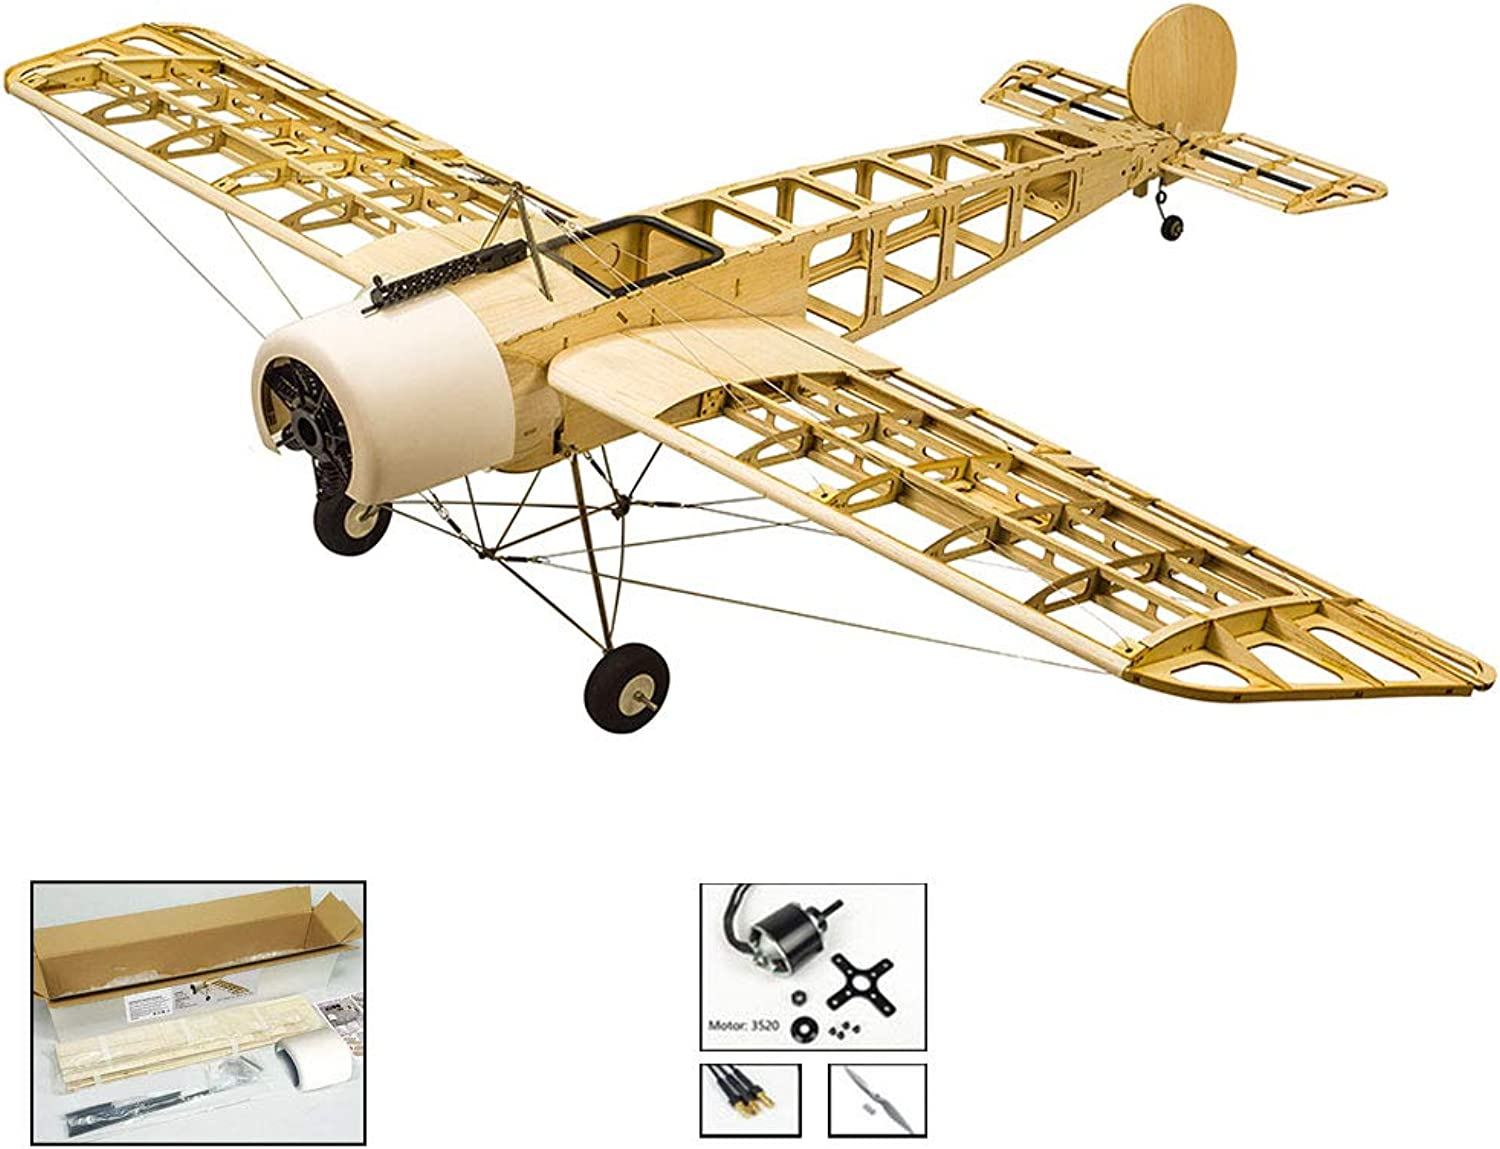 DW Hobby Balsawood Airplane 59  Fokker Eindecker EIII Aircraft Kit to Built ;4CH Radio Controlled Eelectric Laser Cut 1.5M Fokker E Aeroplane KIT Unassembled for Adults (S2402)